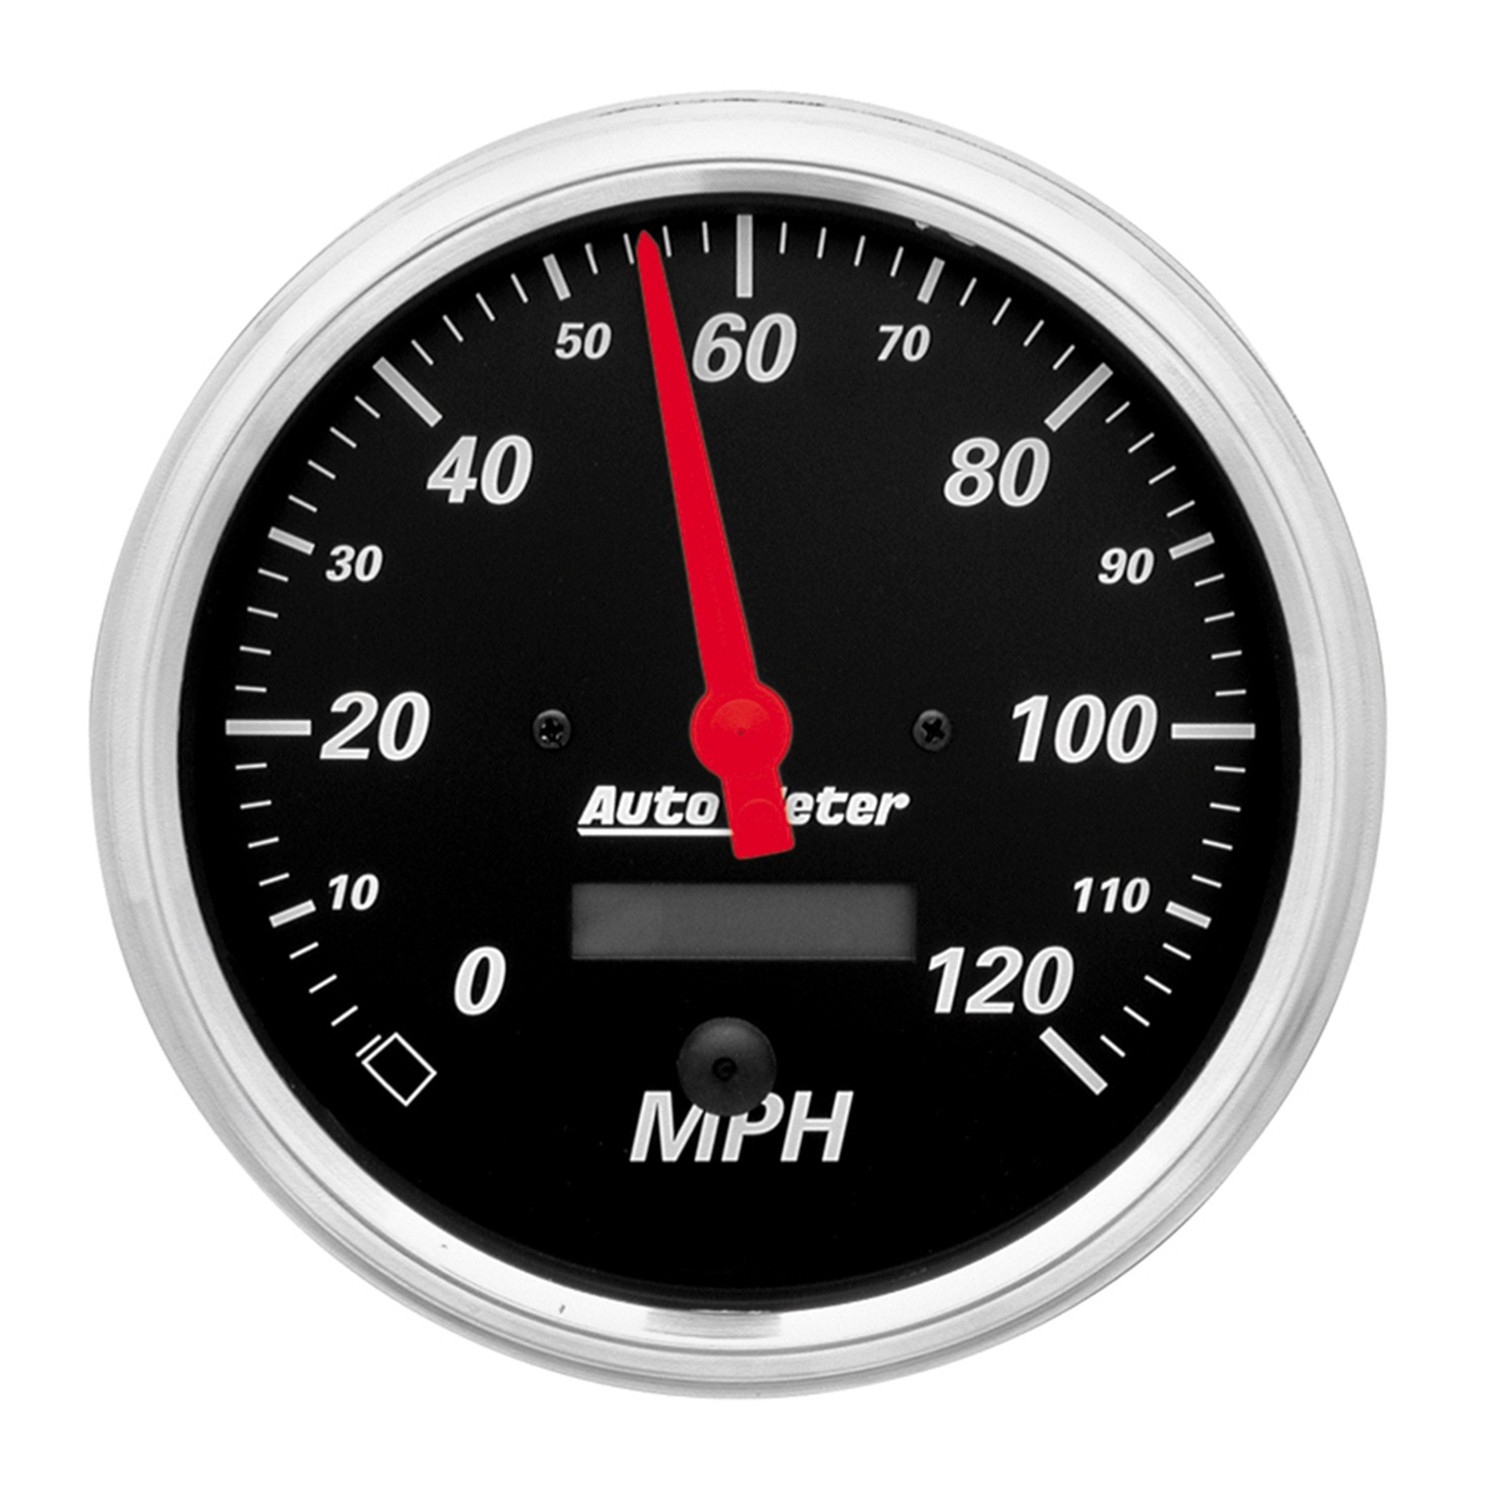 Autometer Gps Speedometer Wiring Diagram Download 1489 62 6 J